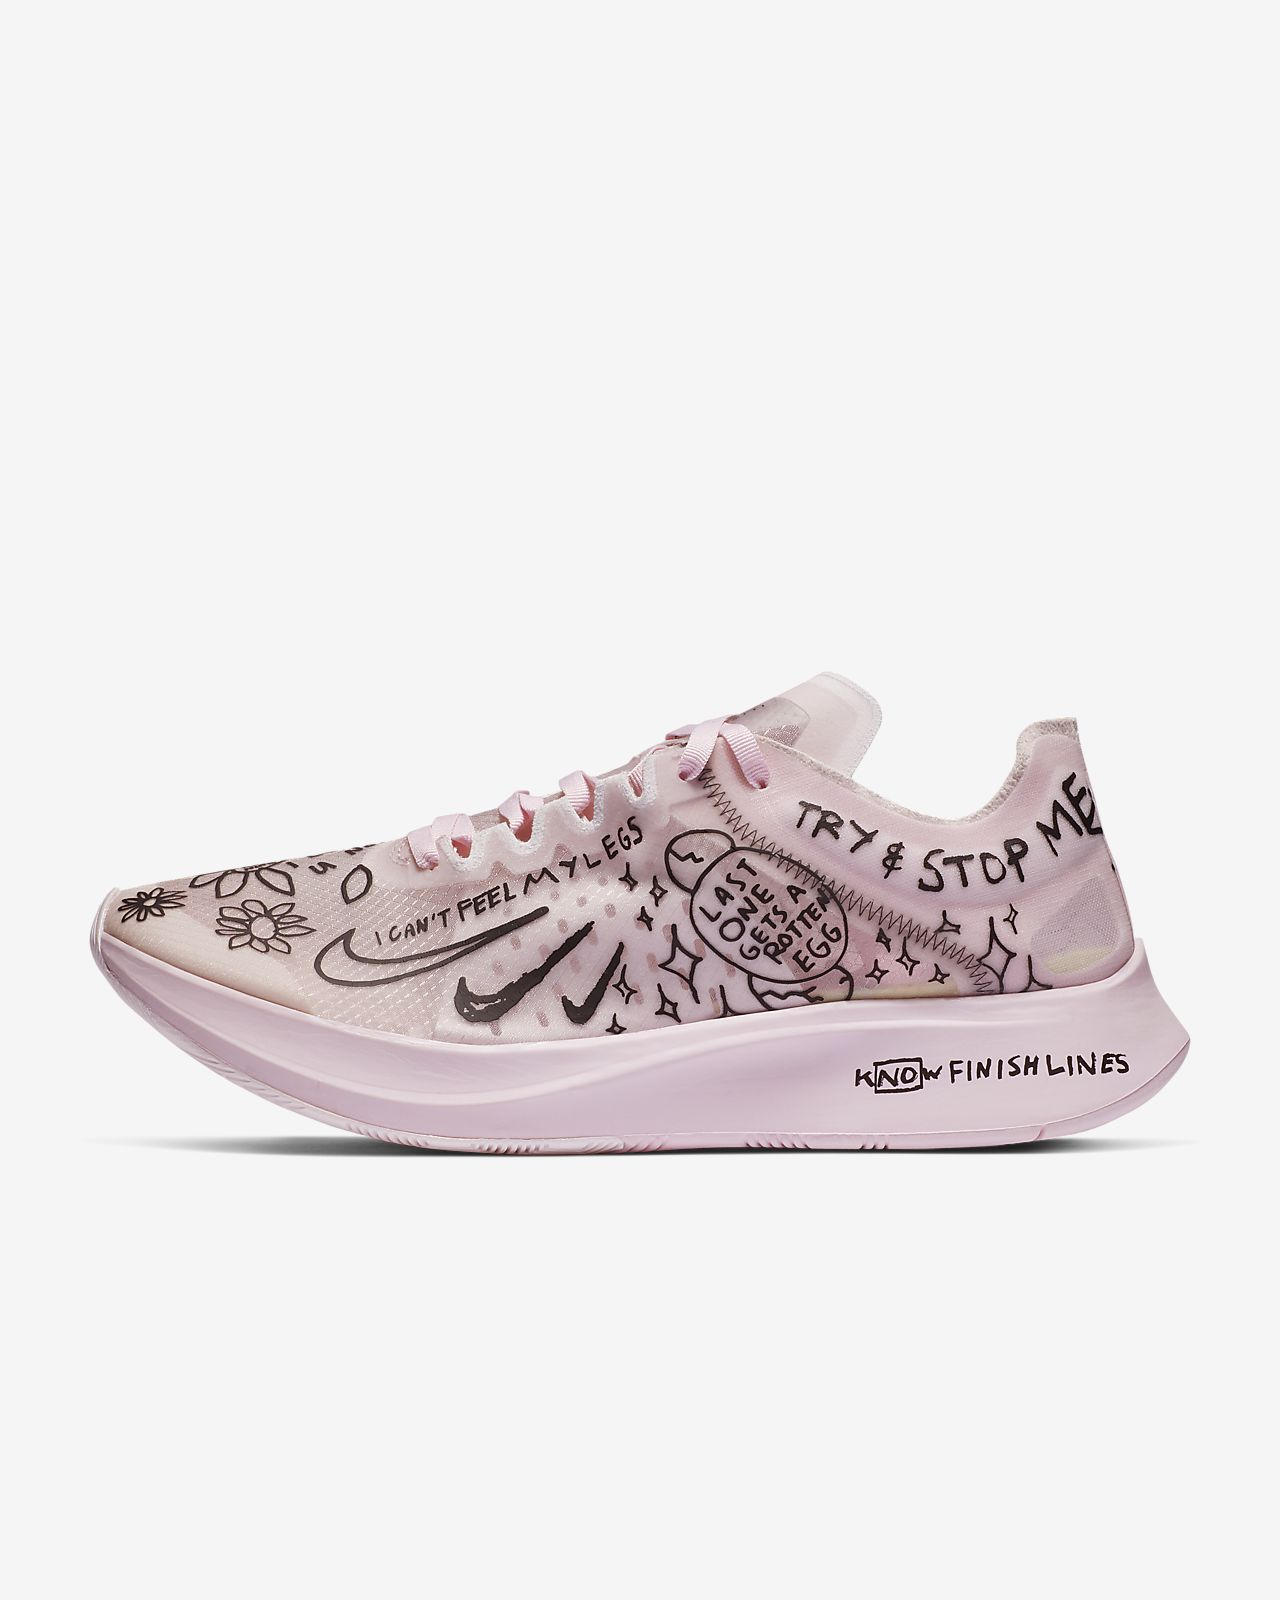 Chaussure de running Nike Zoom Fly SP Fast Nathan Bell